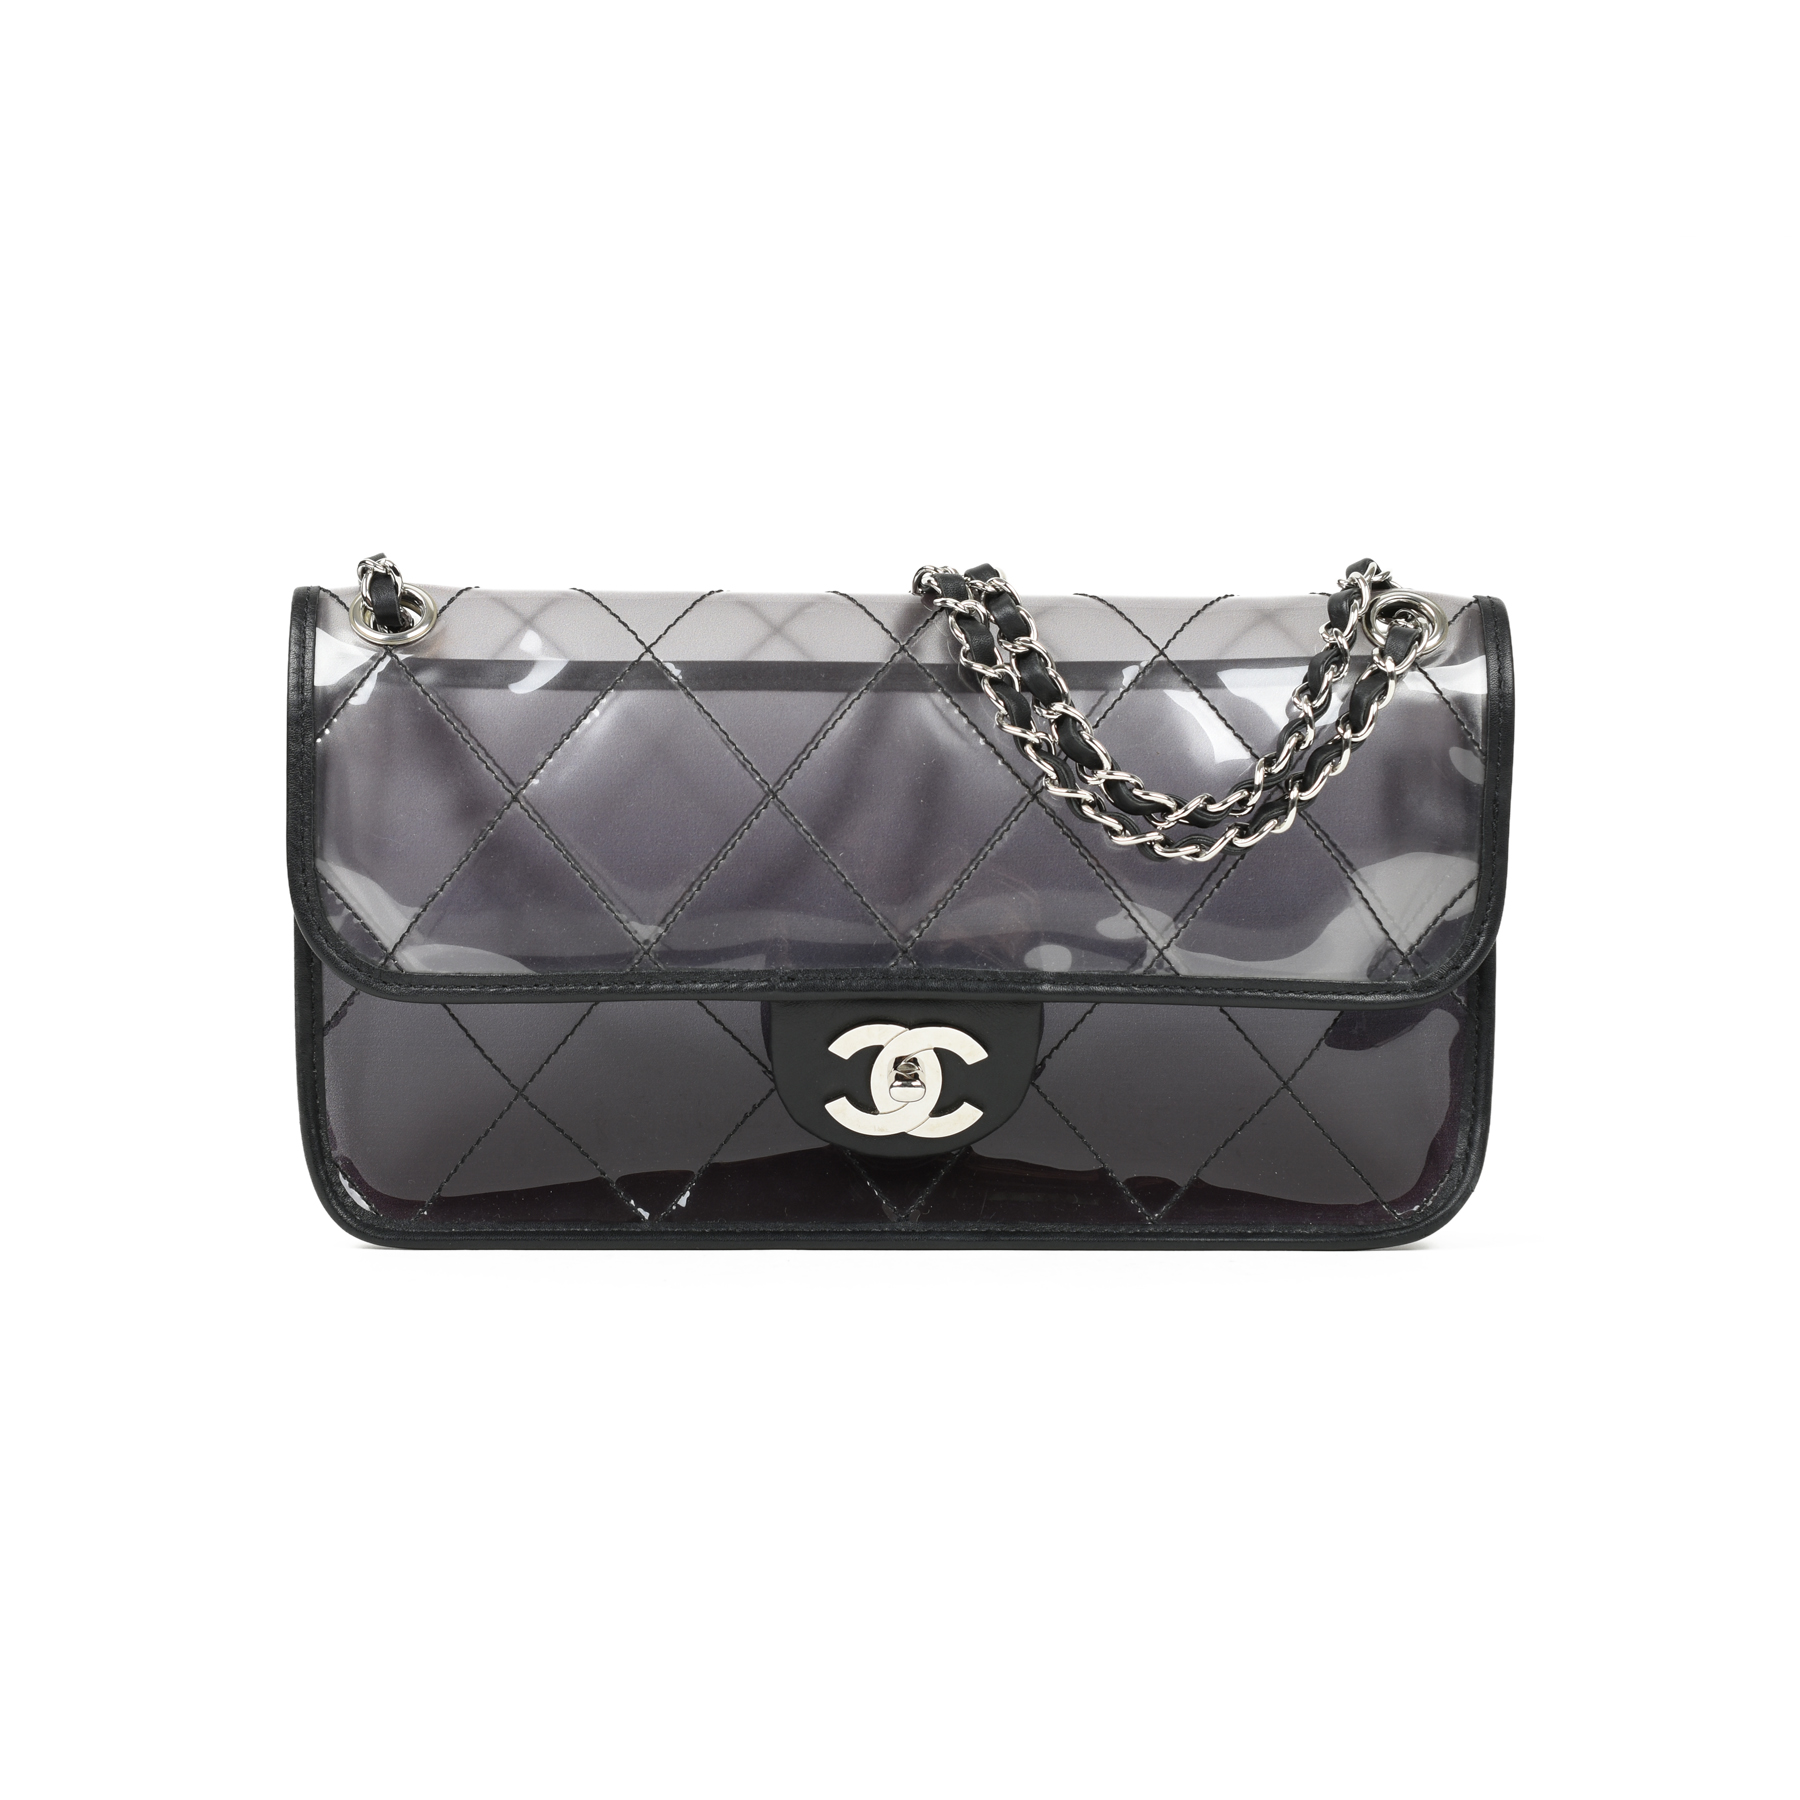 29e093450cd8 Authentic Second Hand Chanel PVC Naked Flap Bag (PSS-051-00328) | THE FIFTH  COLLECTION